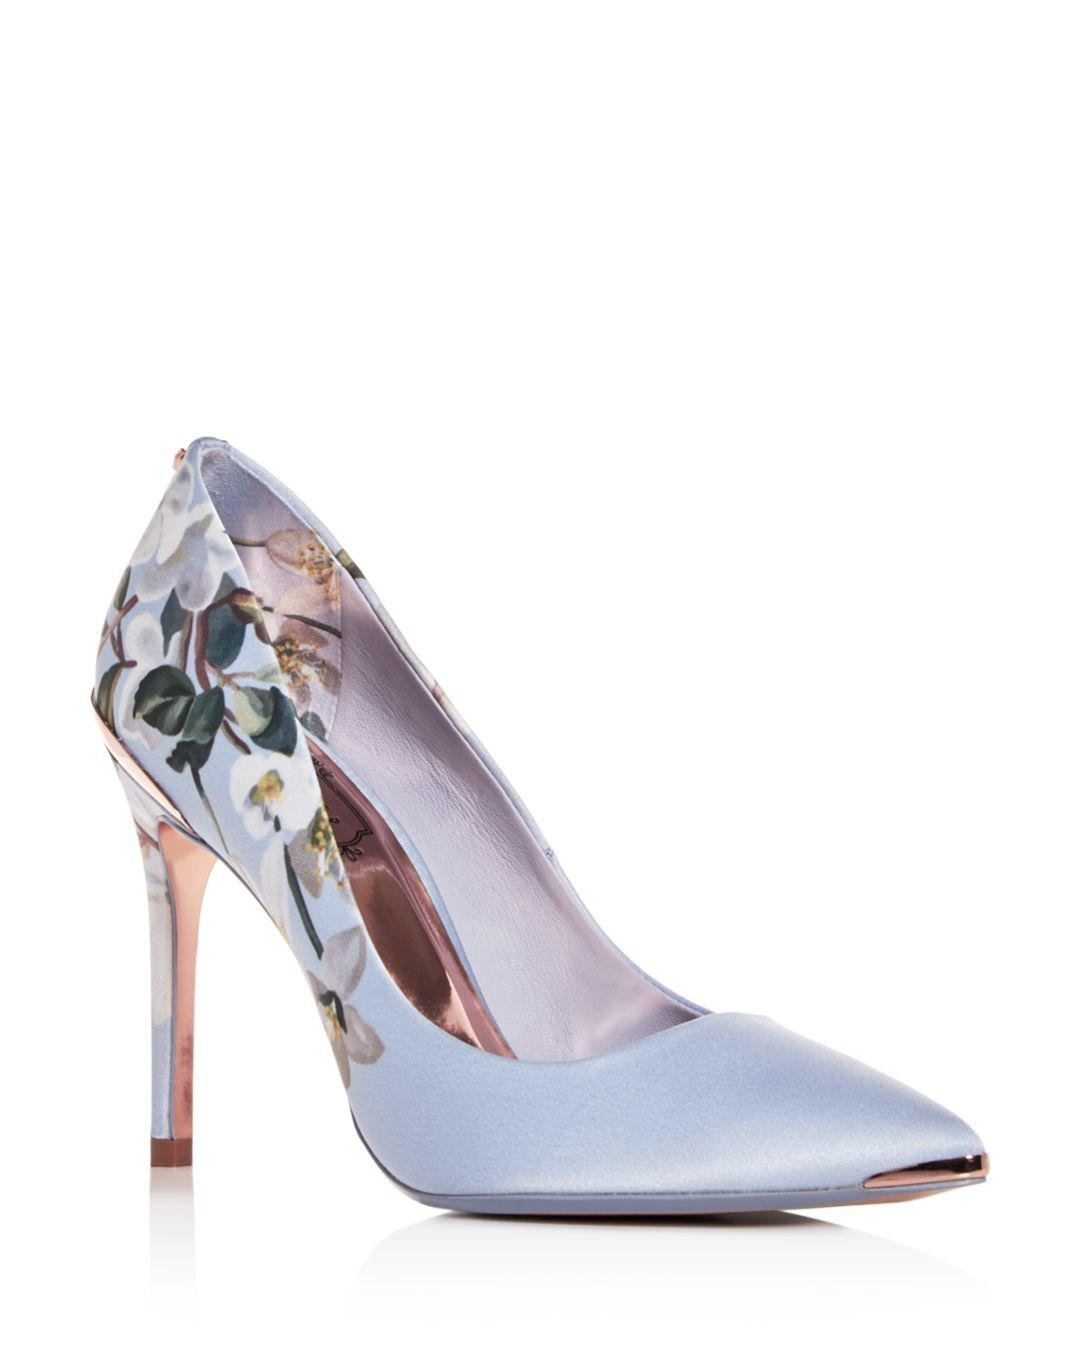 3f2636e38df31 Lyst - Ted Baker Women s Izbelip Floral Pointed-toe Pumps in Blue